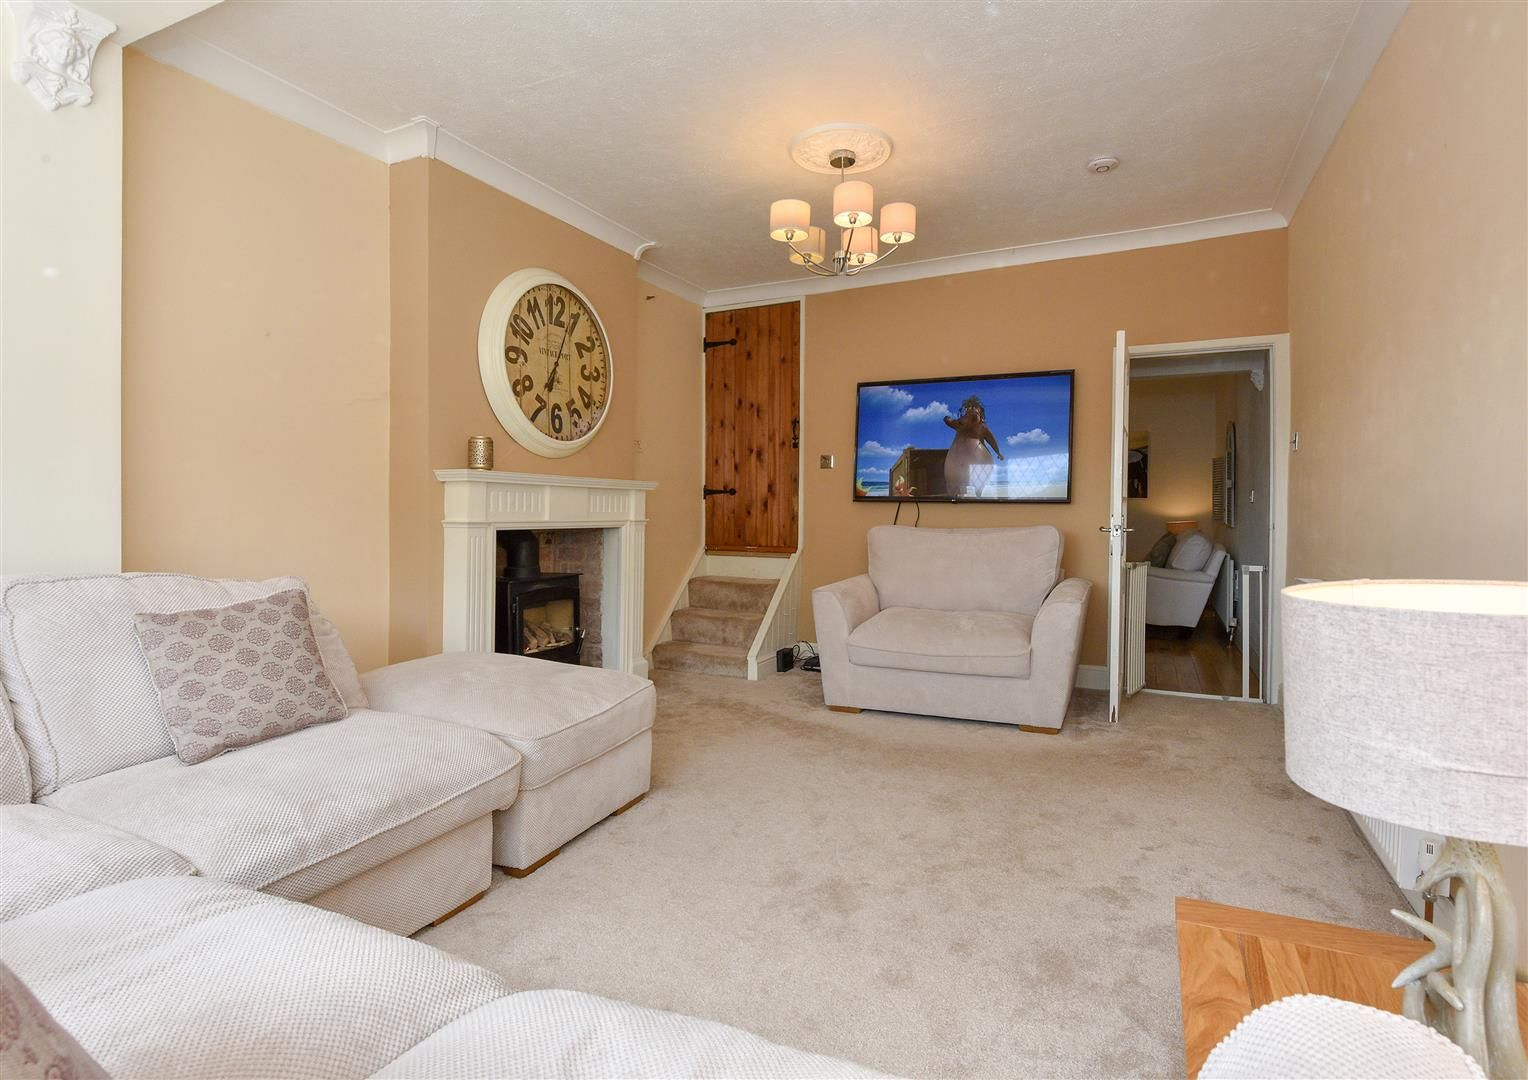 4 bed detached for sale in Swindon  - Property Image 2